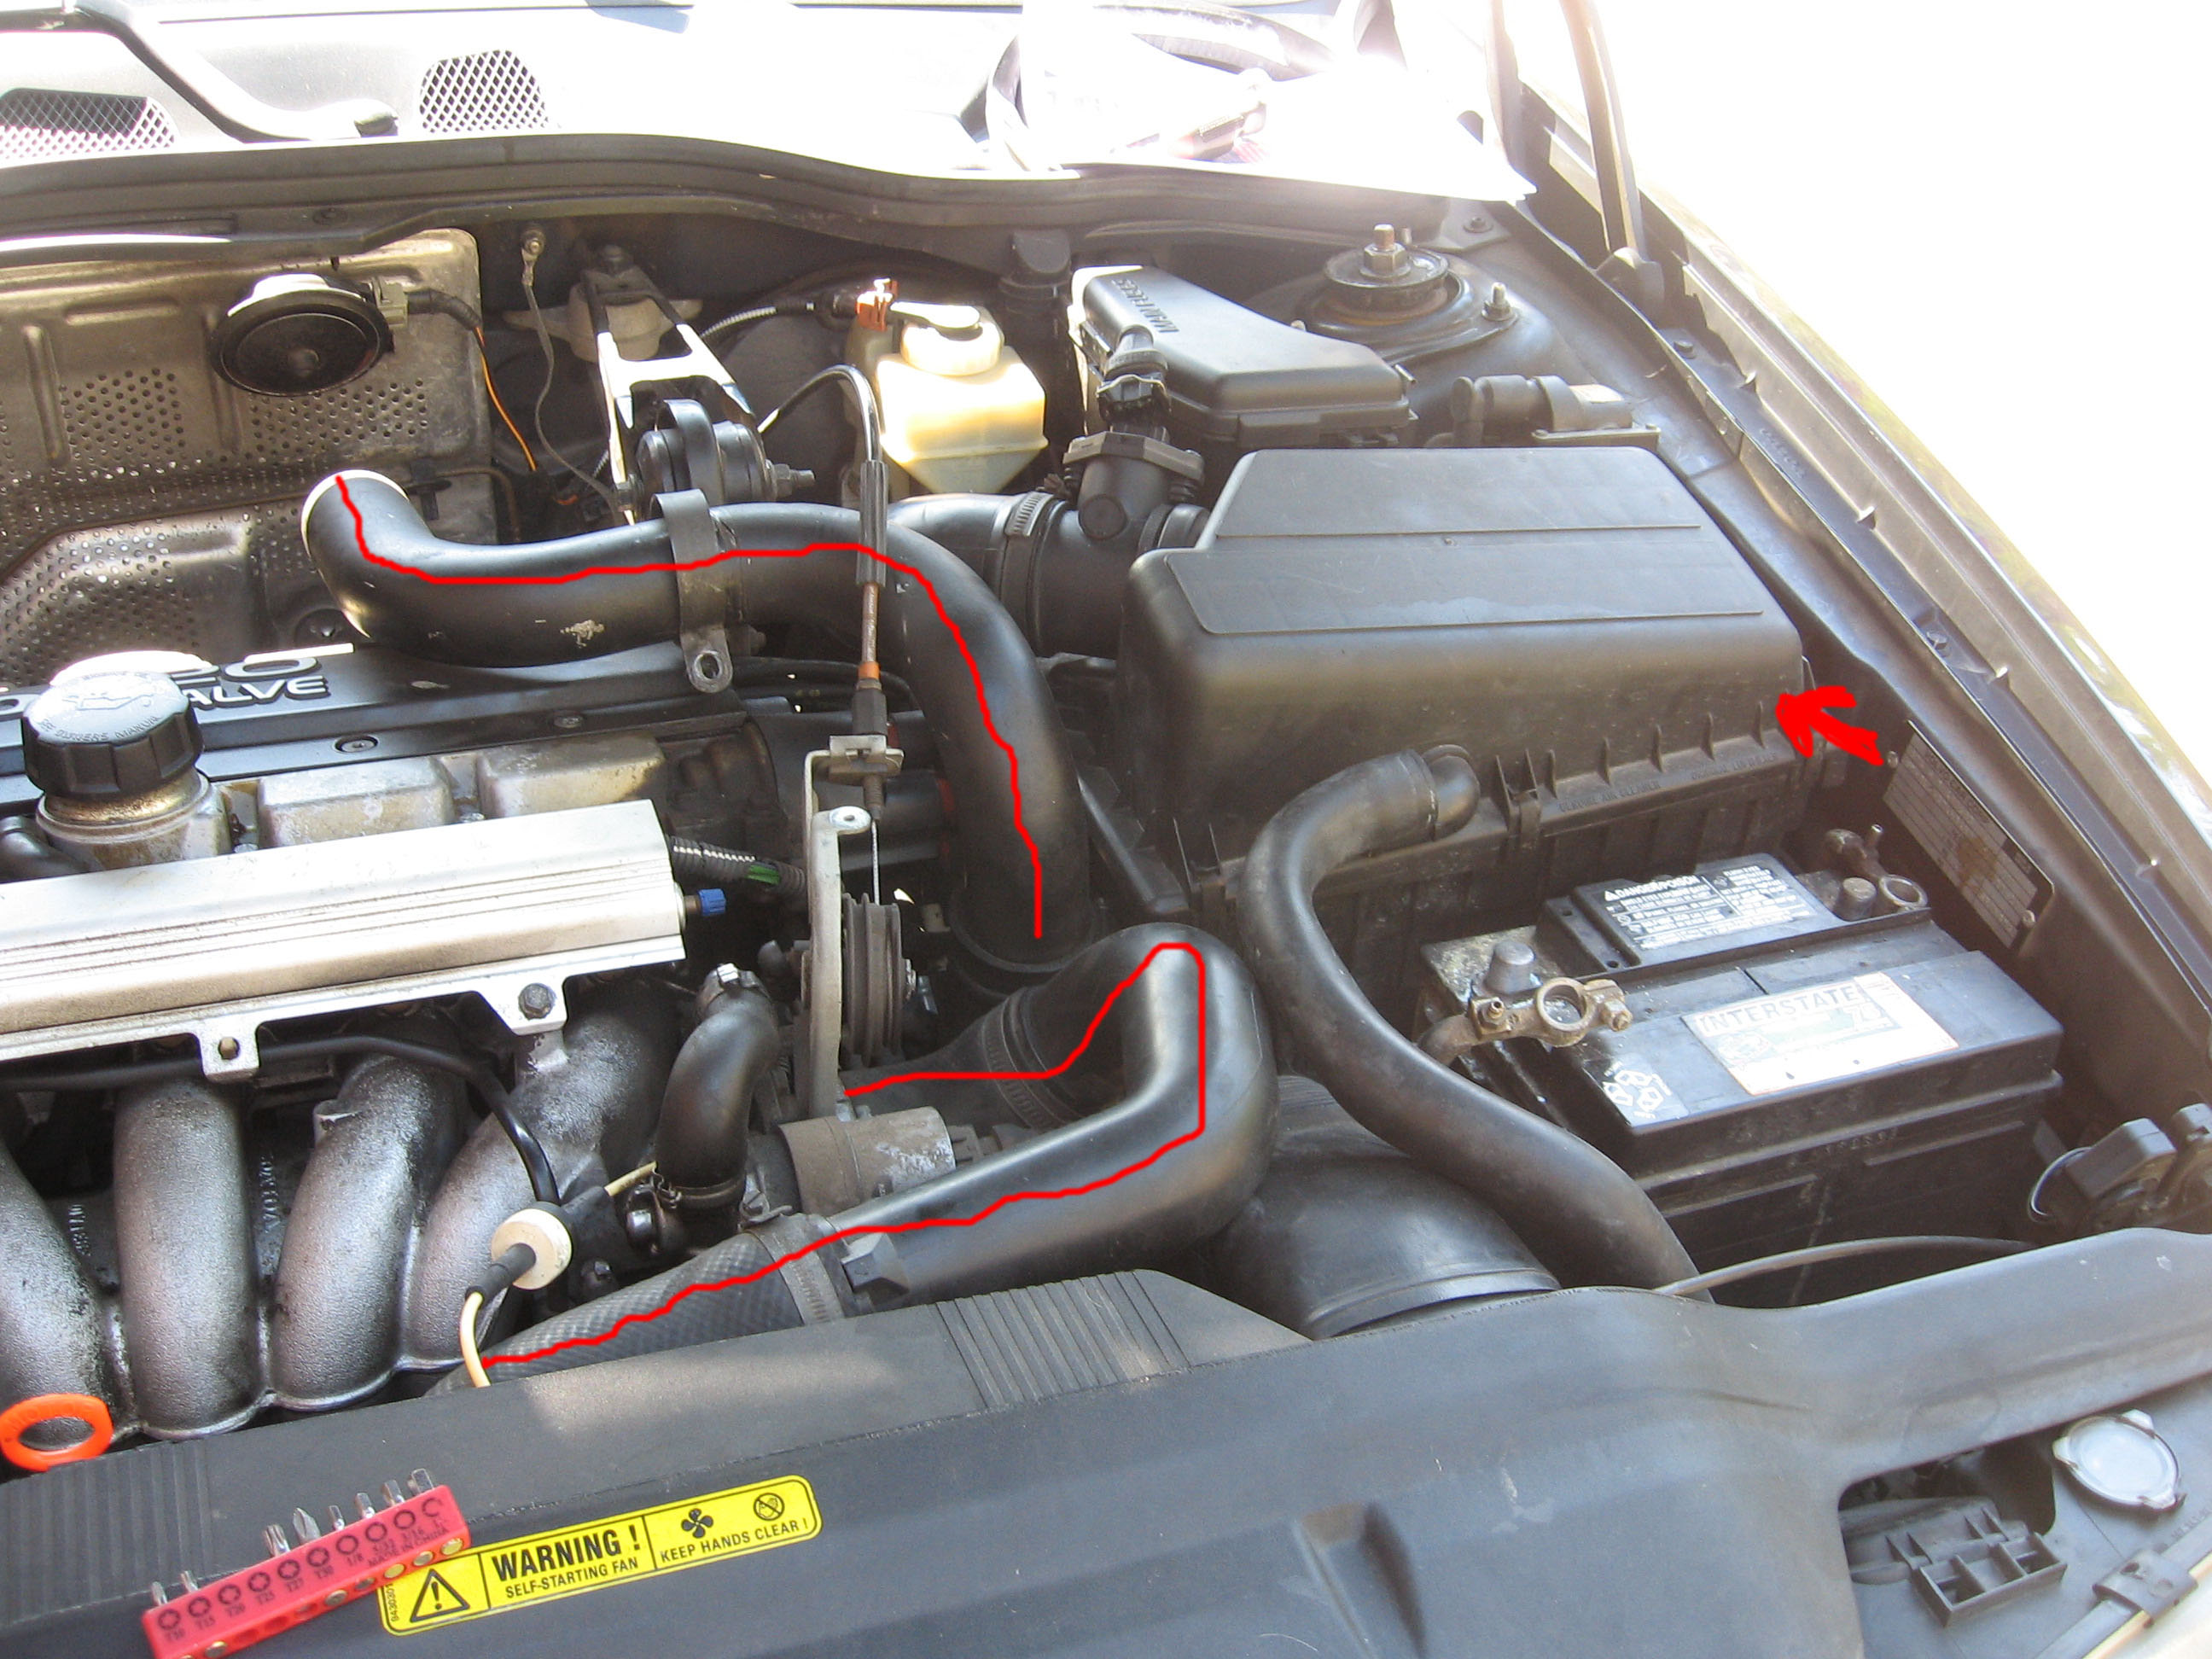 Ford Focus Power Steering Pump additionally 2016 GMC Sierra 2500HD Denali additionally 2005 6 0 Engine Rear Oil Leak further Chevy Valve Cover Wire Looms additionally Volvo 240 Flame Trap. on pcv valve engine car parts